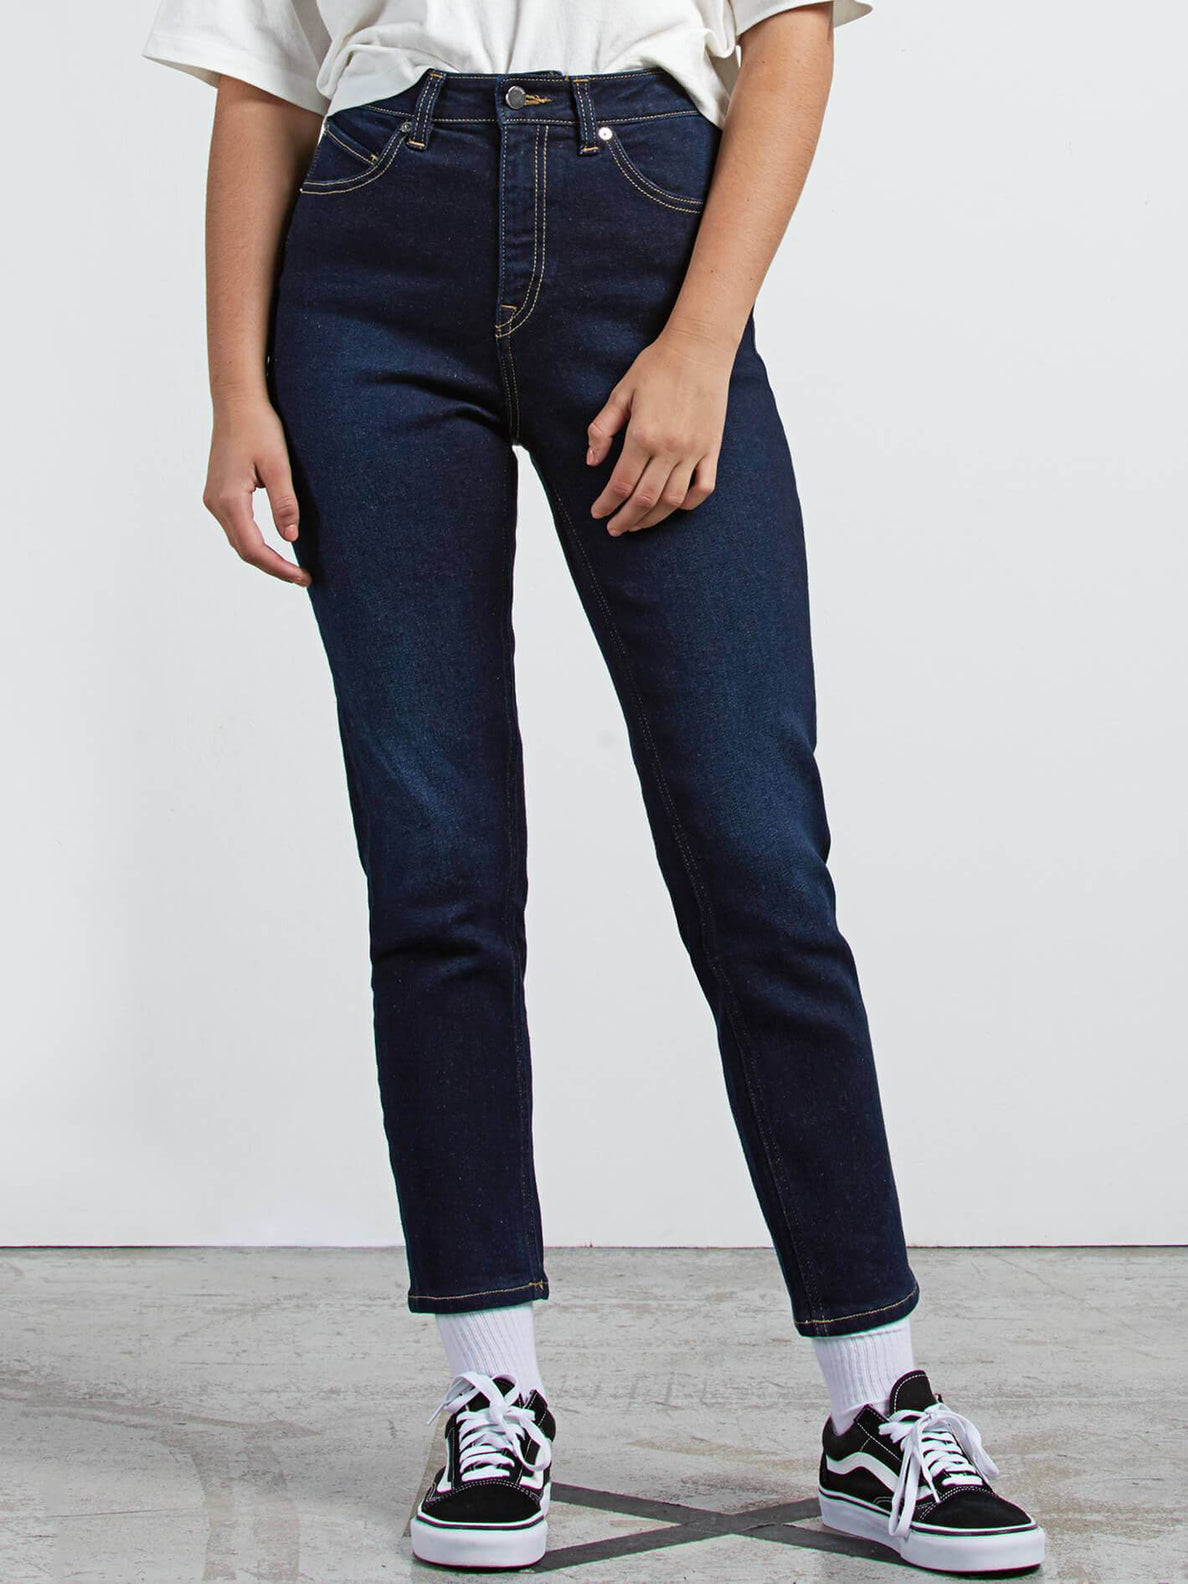 Vol Stone Jeans In Service Blue, Front View